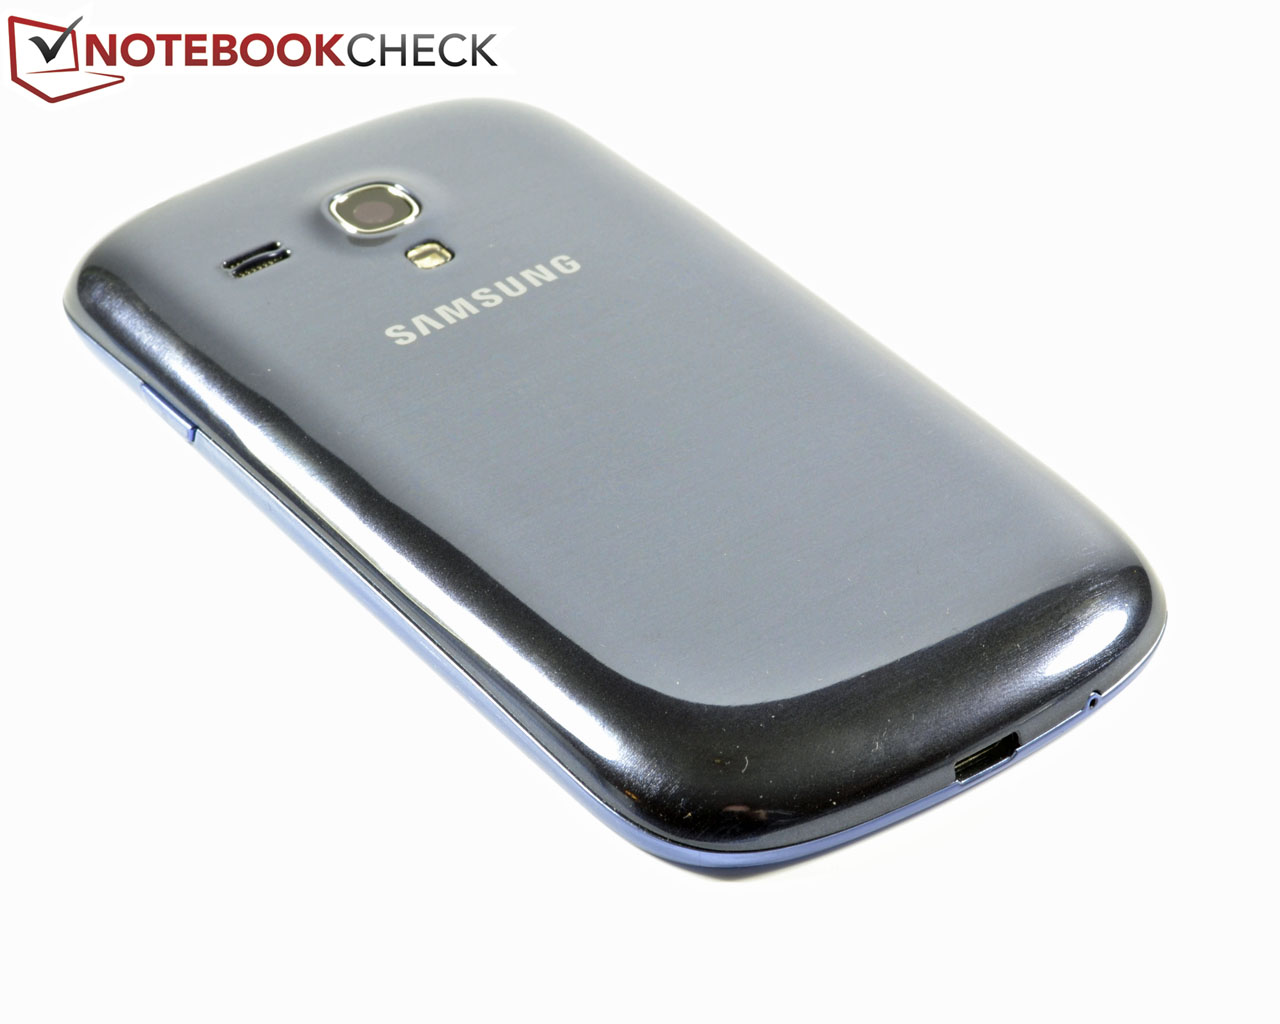 Samsung galaxy s3 mini i8190 power button ways - The Back Panel Is Susceptible To Staining The Two Piece Body Of The Samsung Galaxy S3 Mini Gt I8190 Like